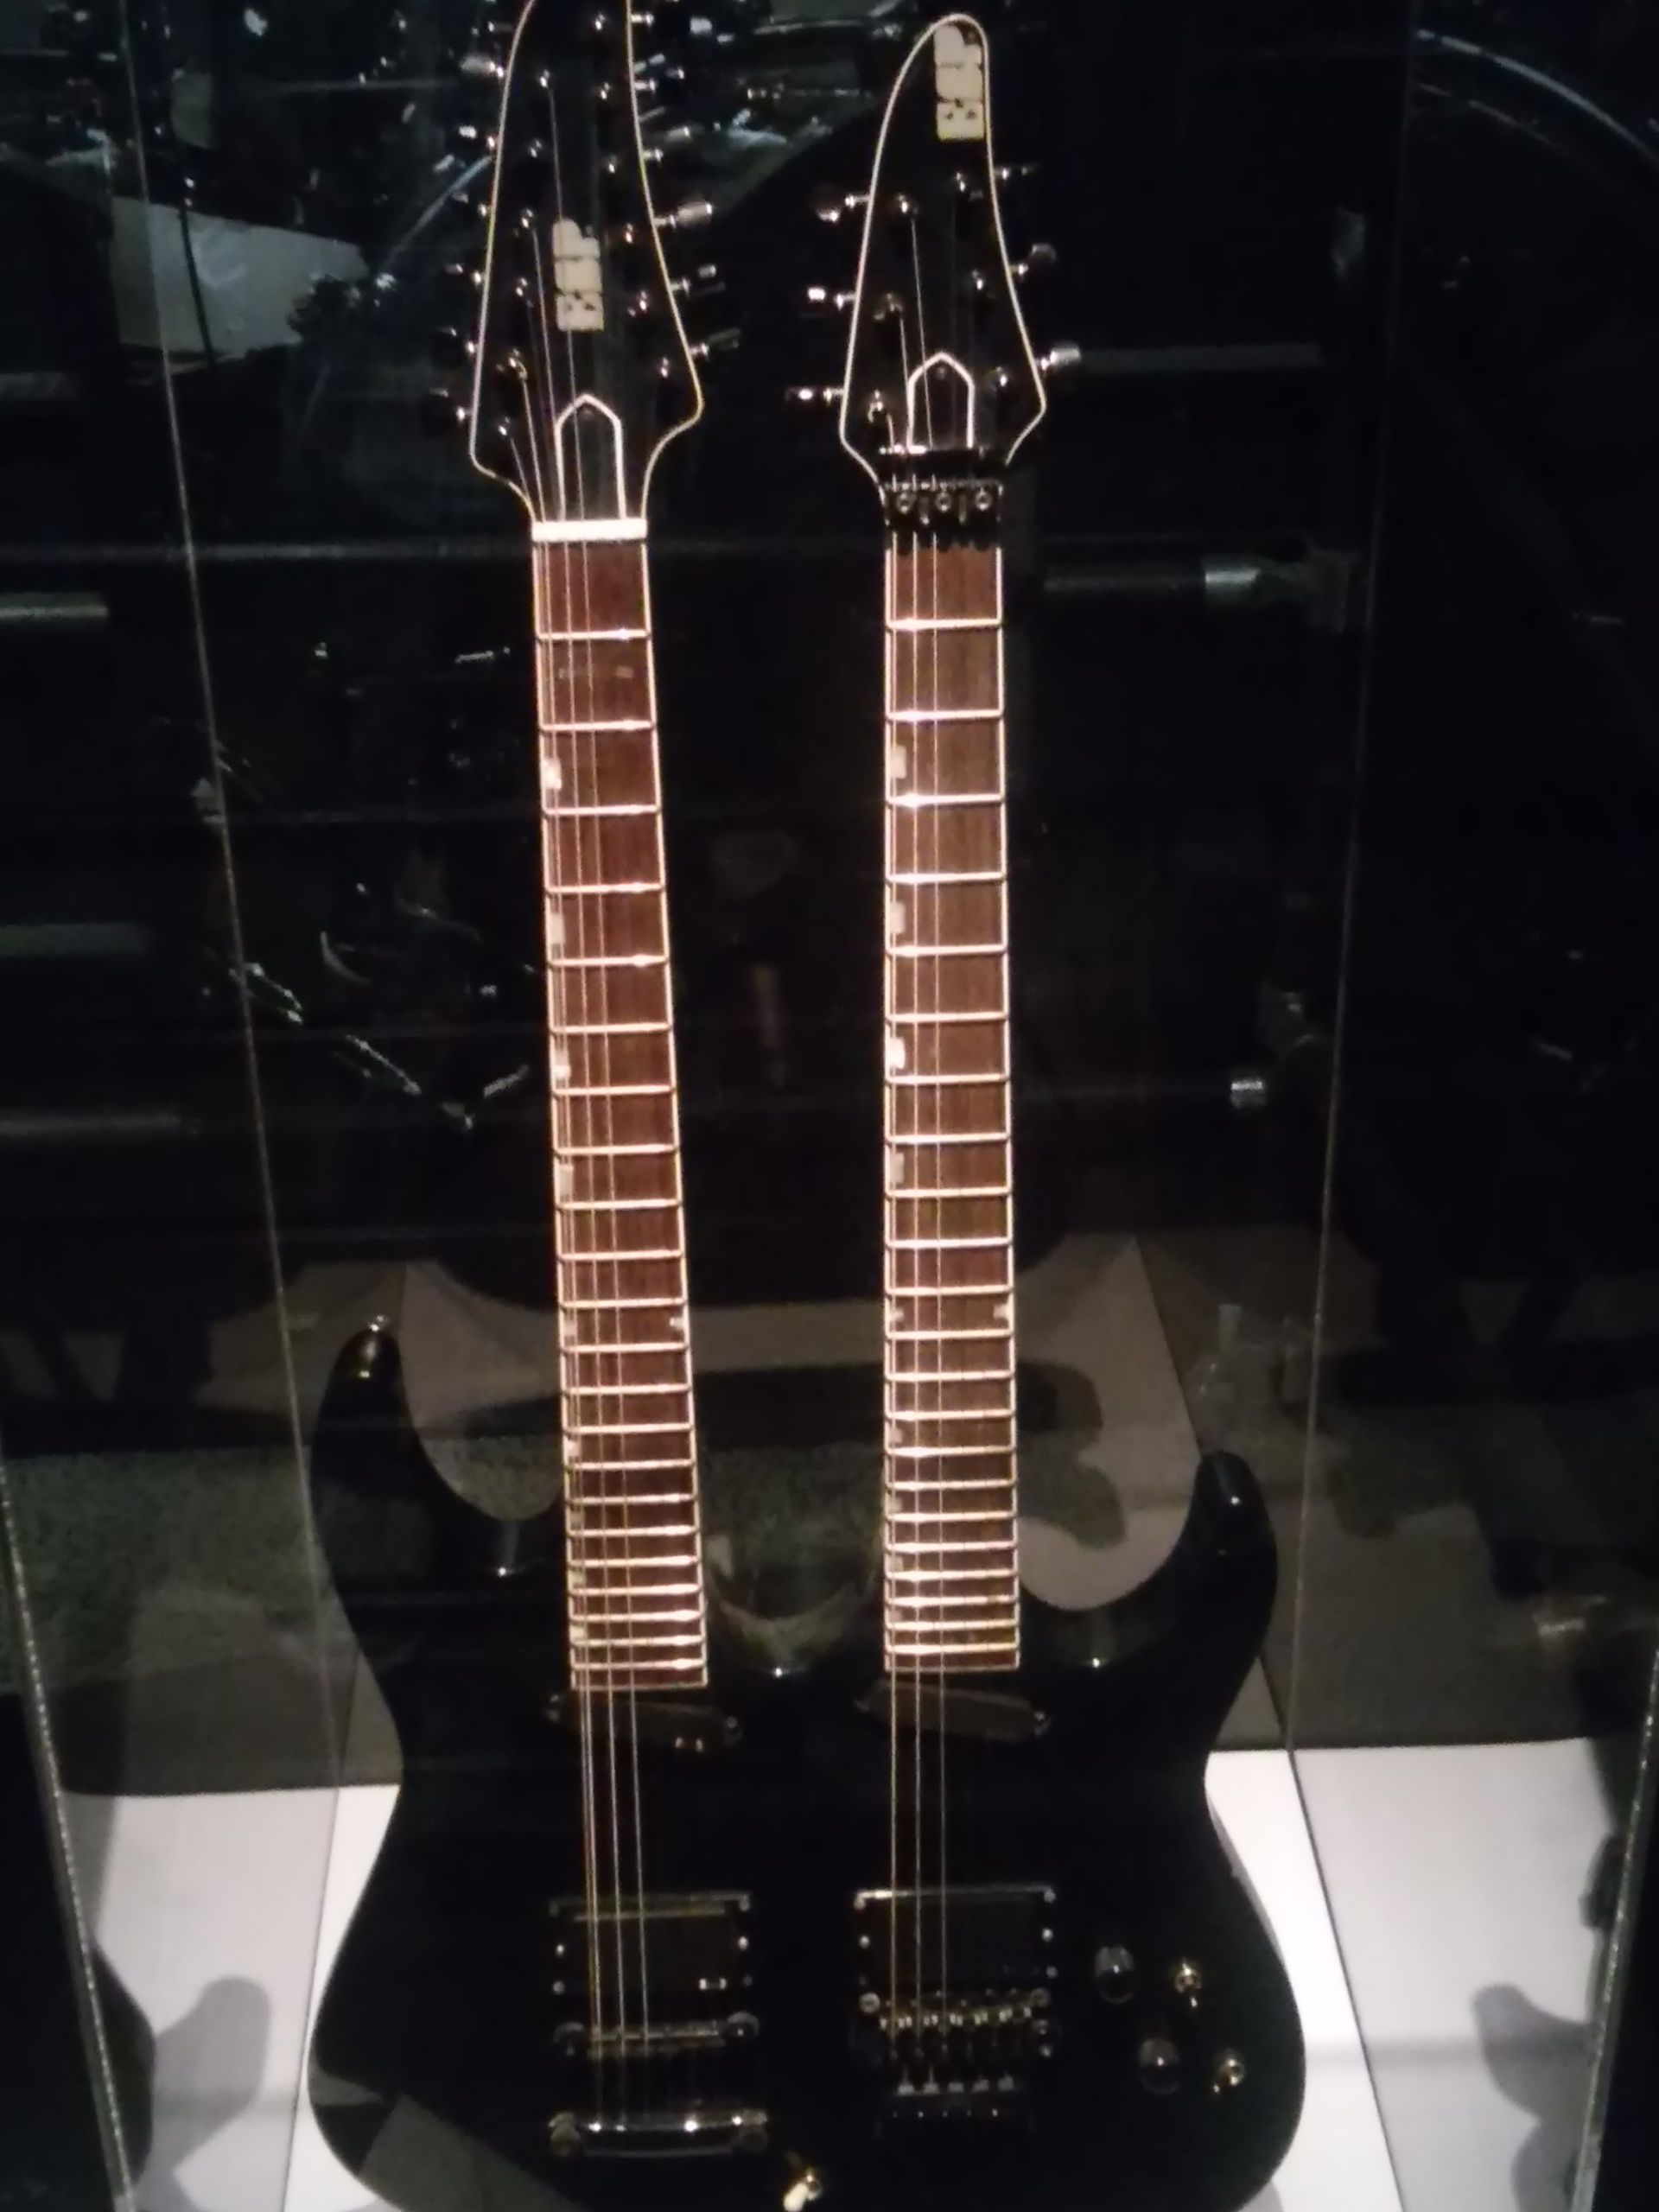 metallica 39 s james hetfield 39 s esp double neck standard 1991 guitar at the rock and roll hall of. Black Bedroom Furniture Sets. Home Design Ideas